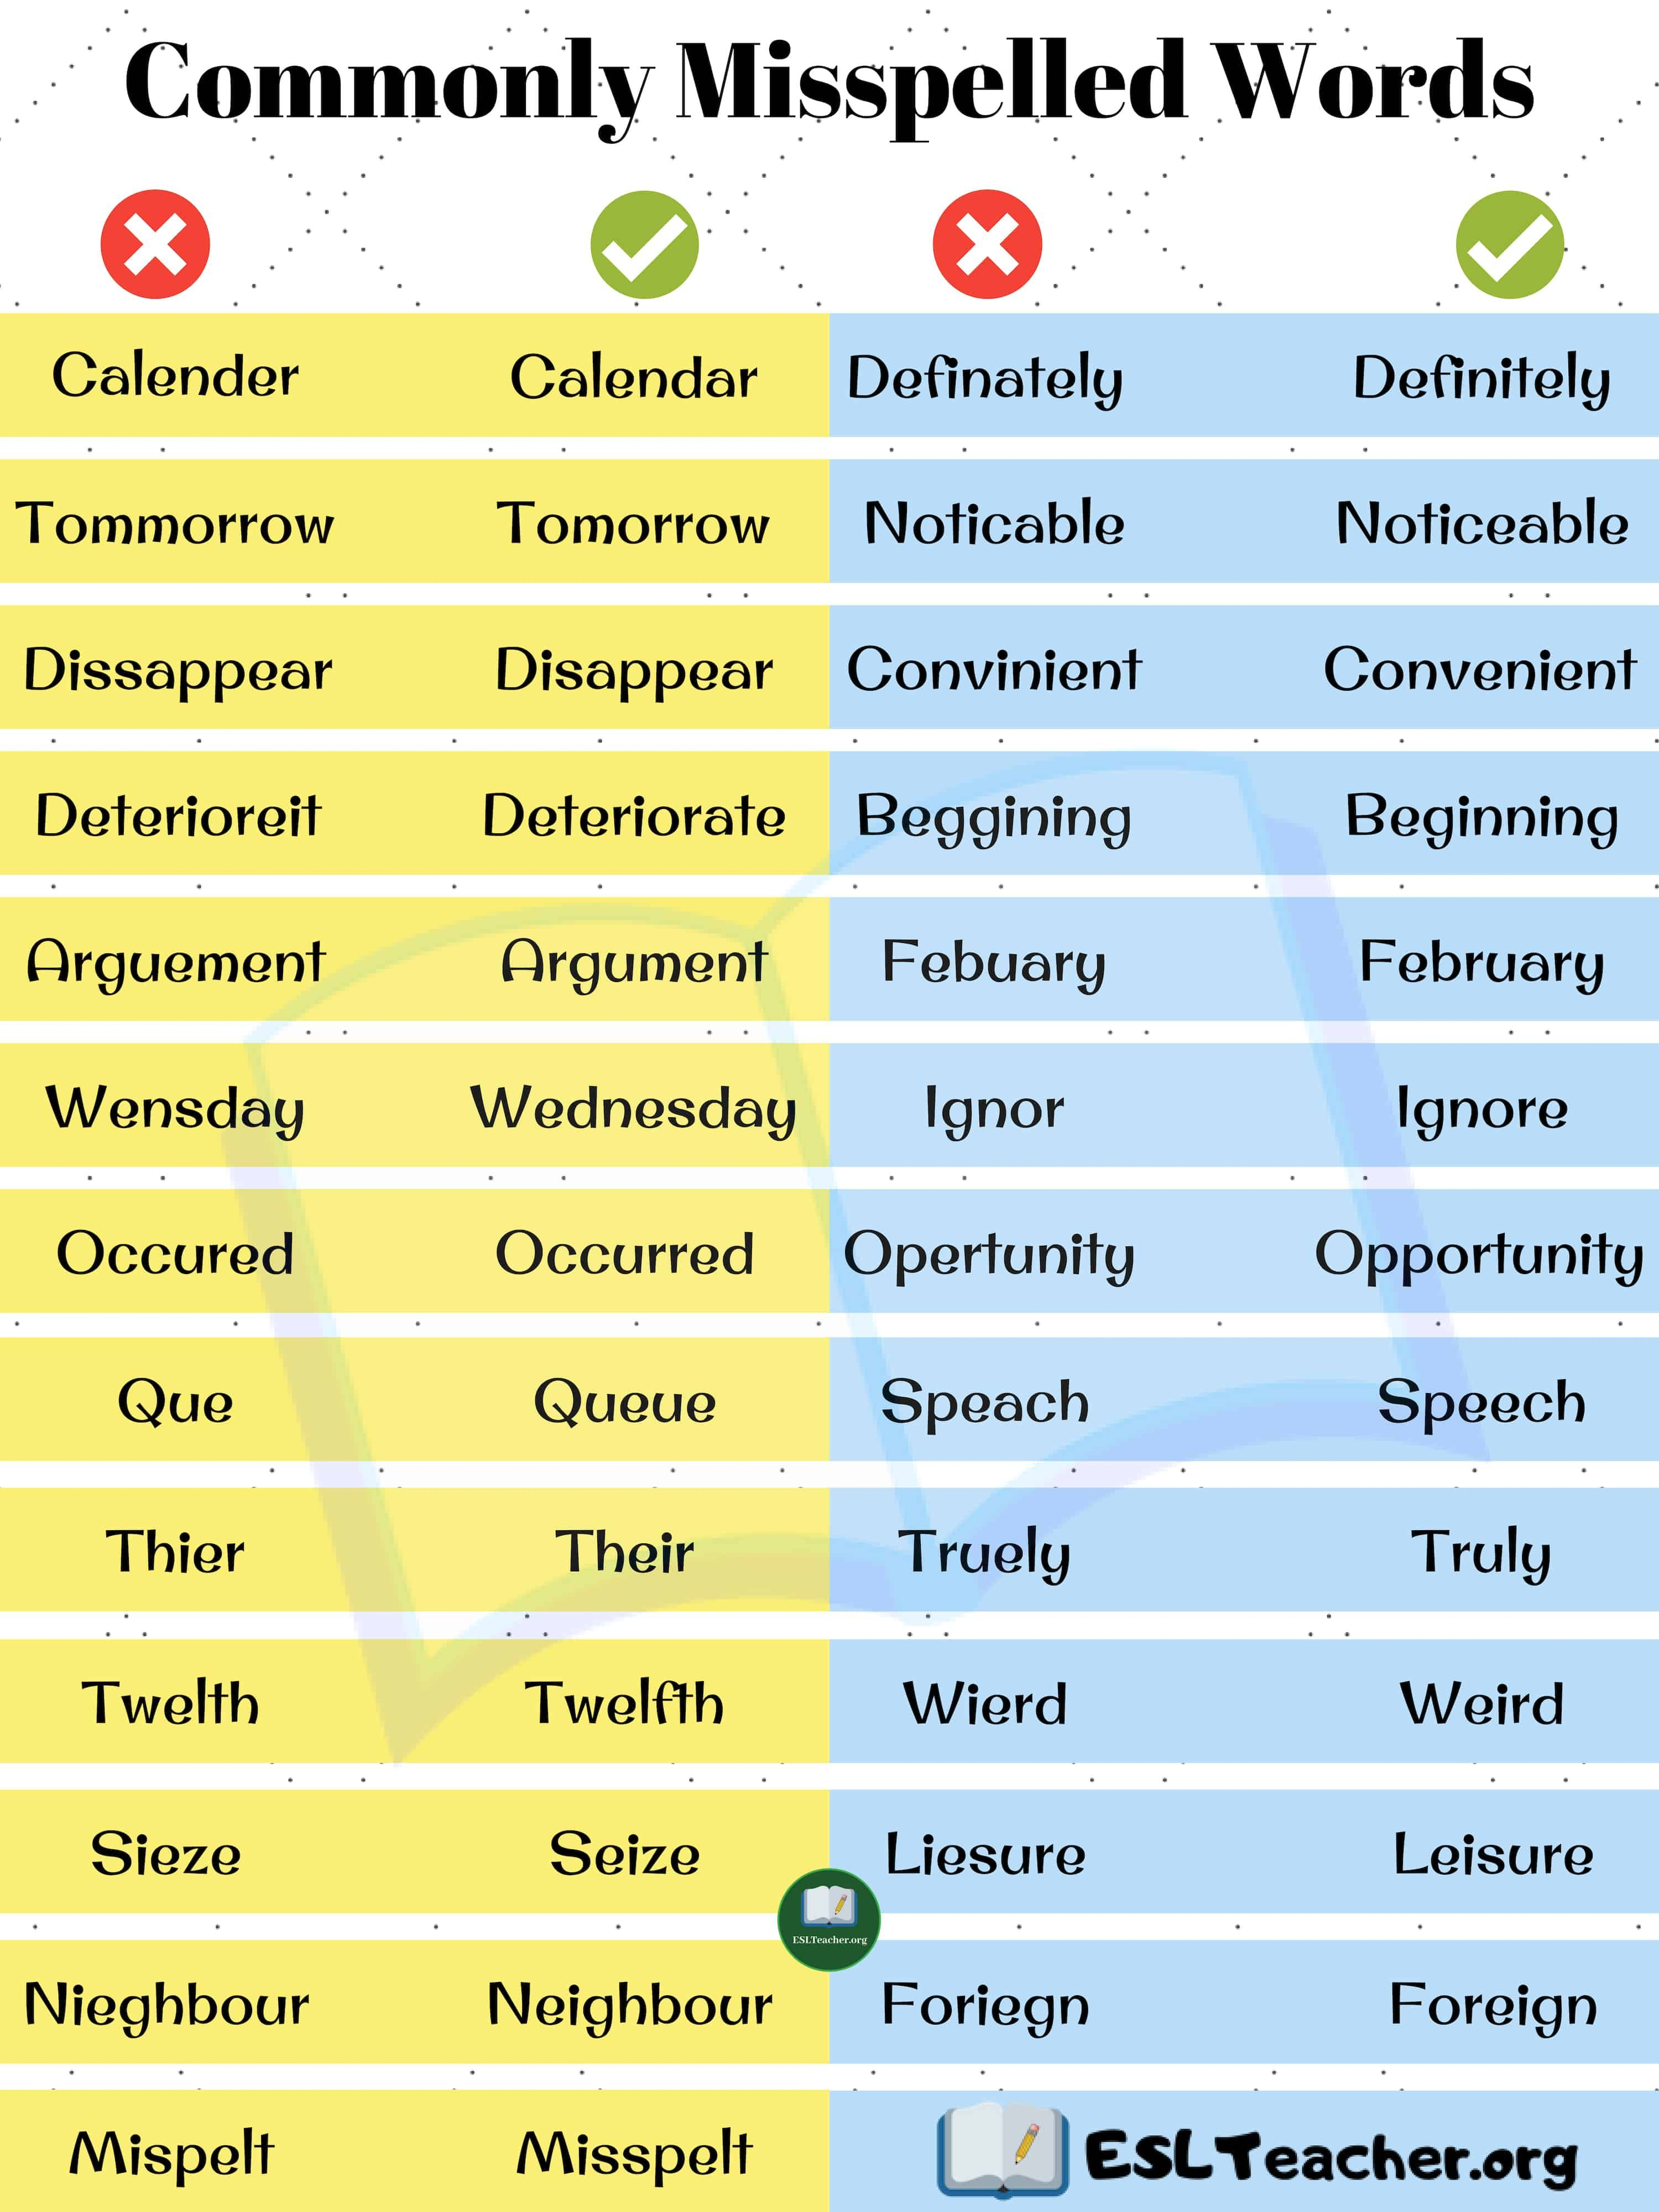 25 Most Commonly Misspelled Words How To Spell Them Right Esl Teachers Misspelled Words Commonly Misspelled Words Words